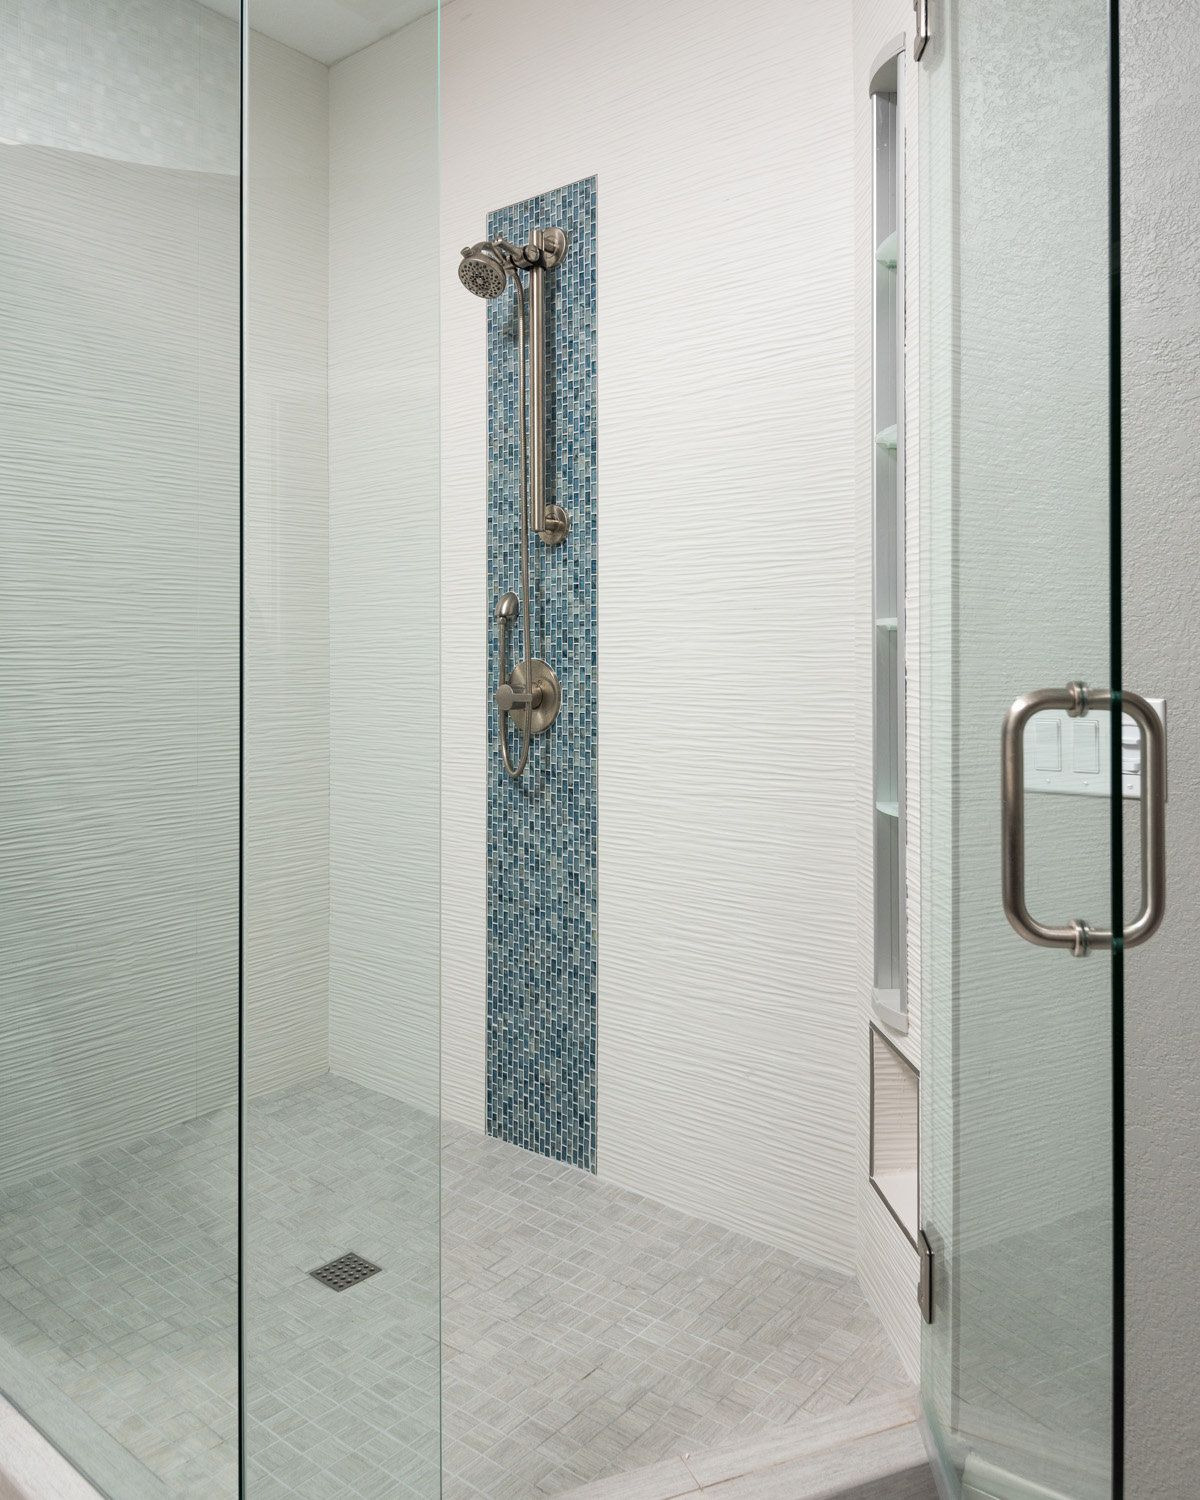 View Some Before And After Bathroom Remodels Completedclassic Cool San Diego Bathroom Remodel Decorating Inspiration